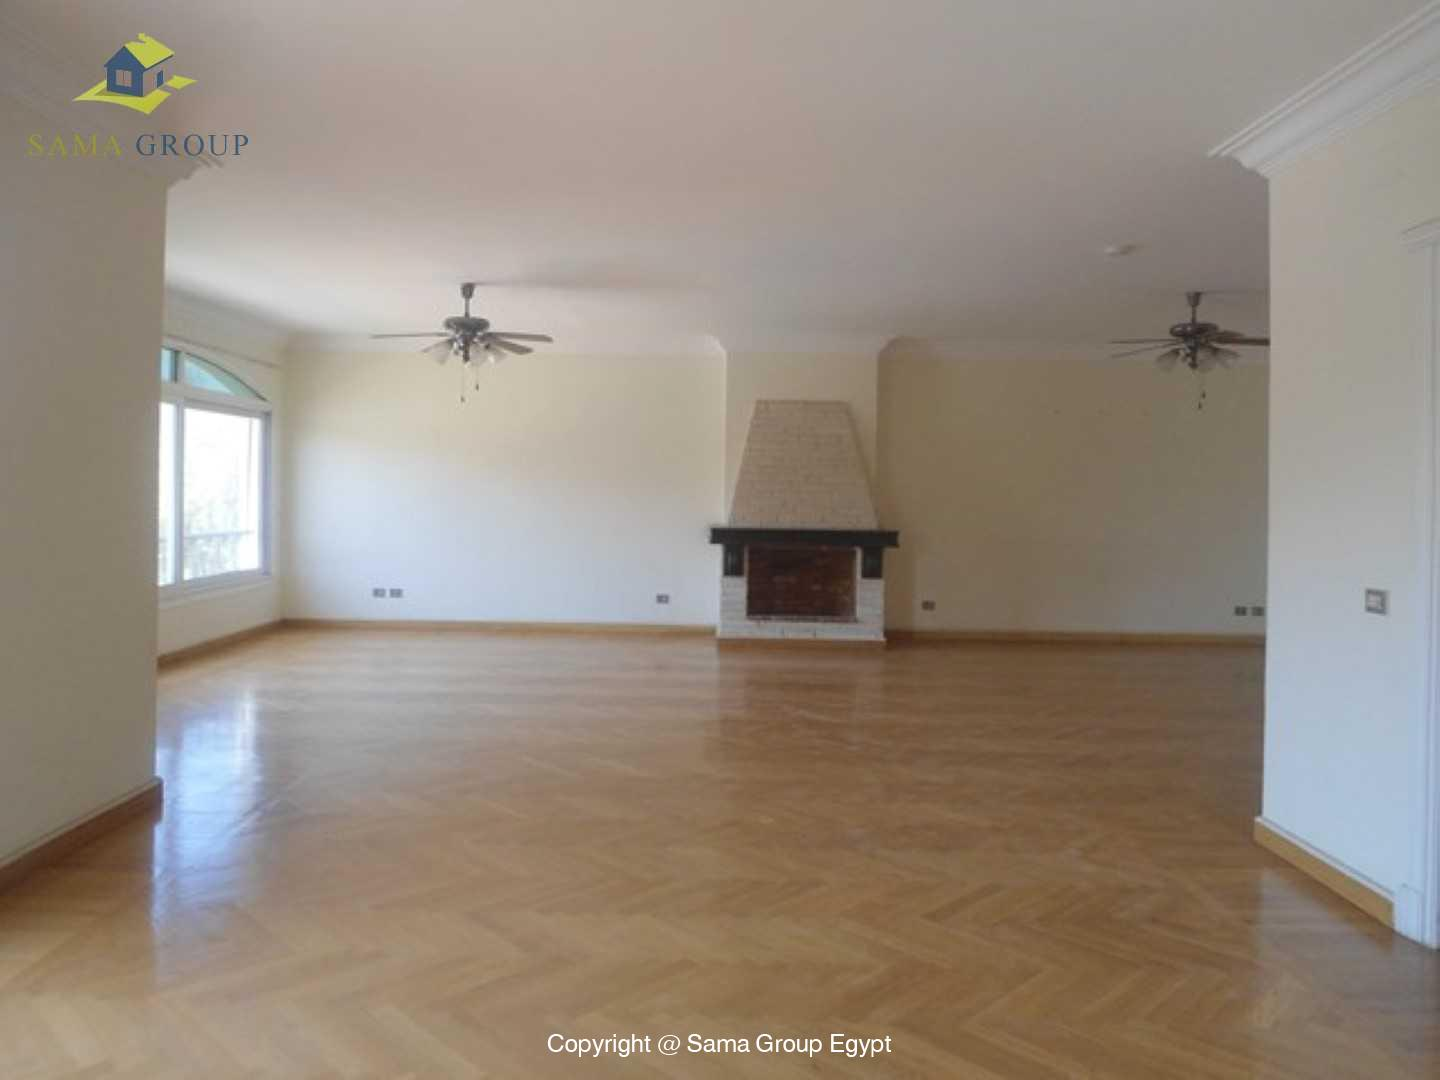 Penthouse with Swimming Pool For Rent In Maadi,Semi furnished,Penthouse NO #15